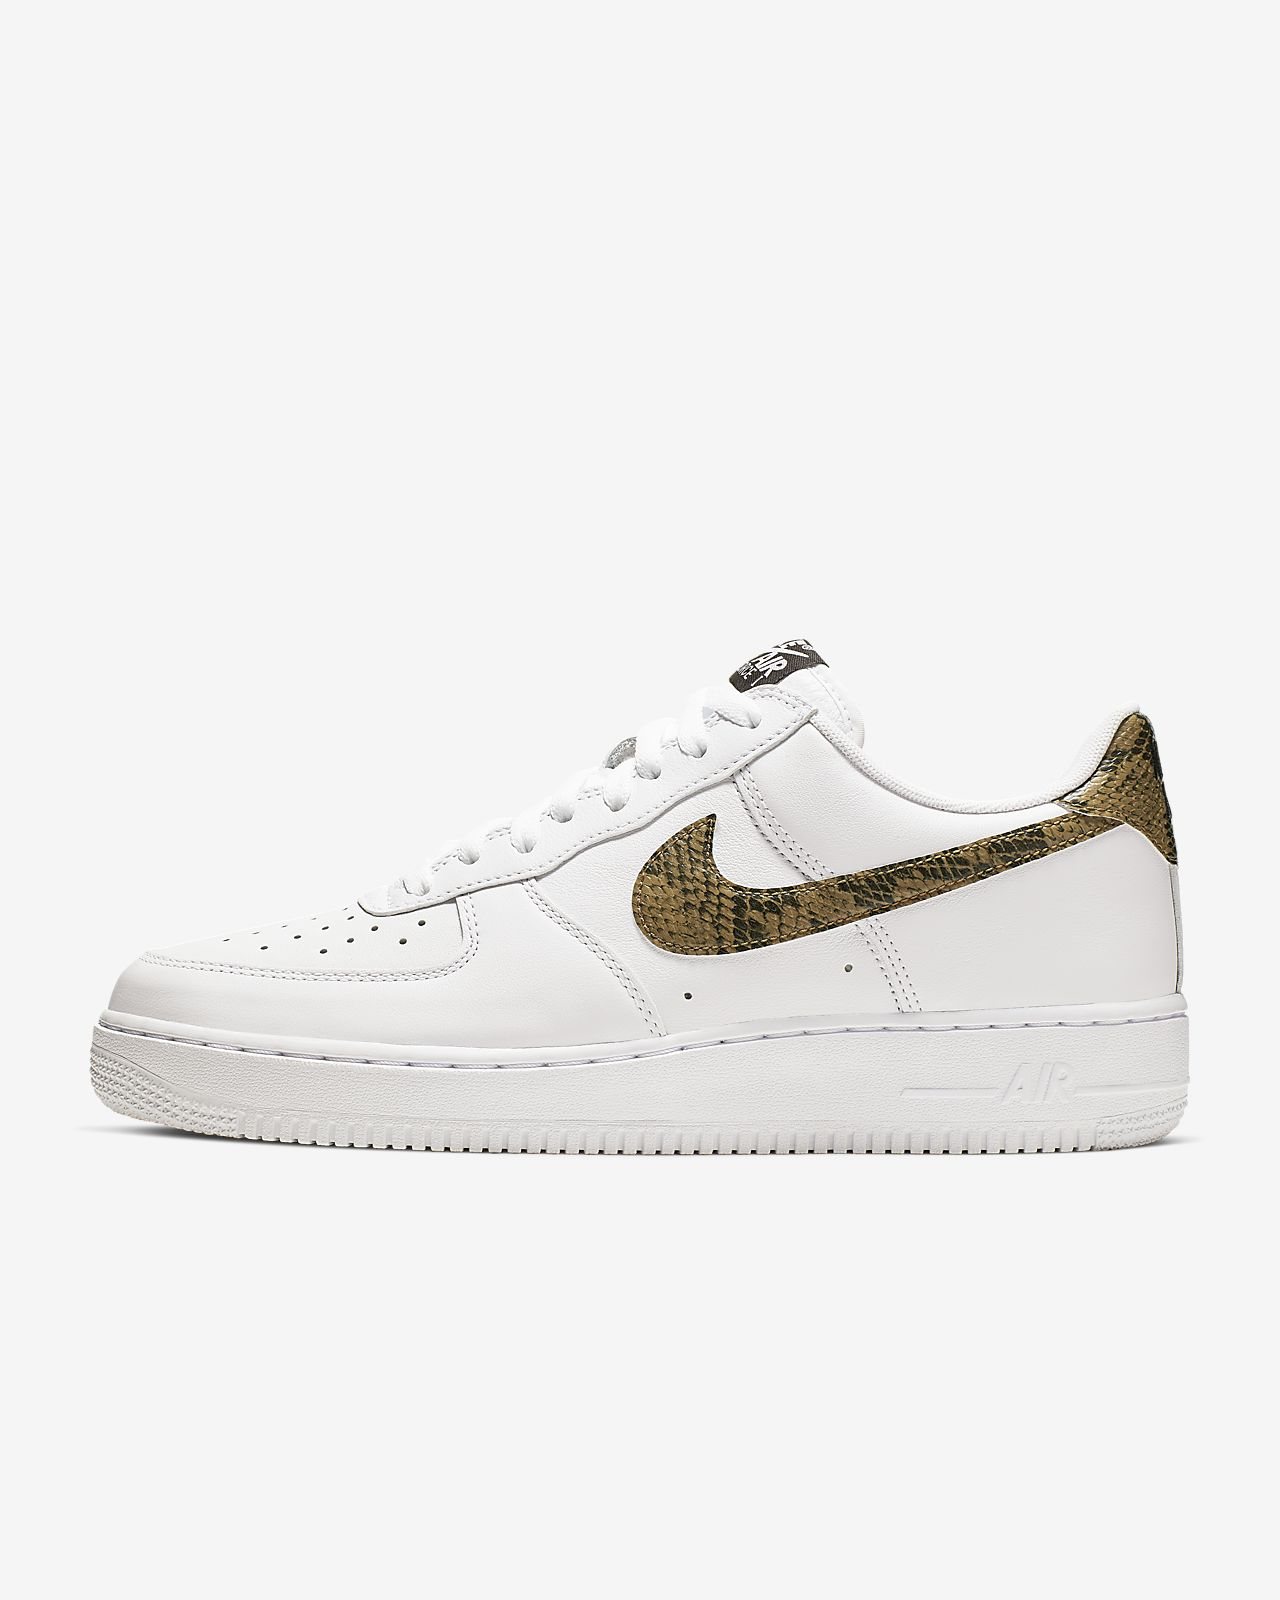 Nike Air Force 1 Low Retro Premium Men's Shoe